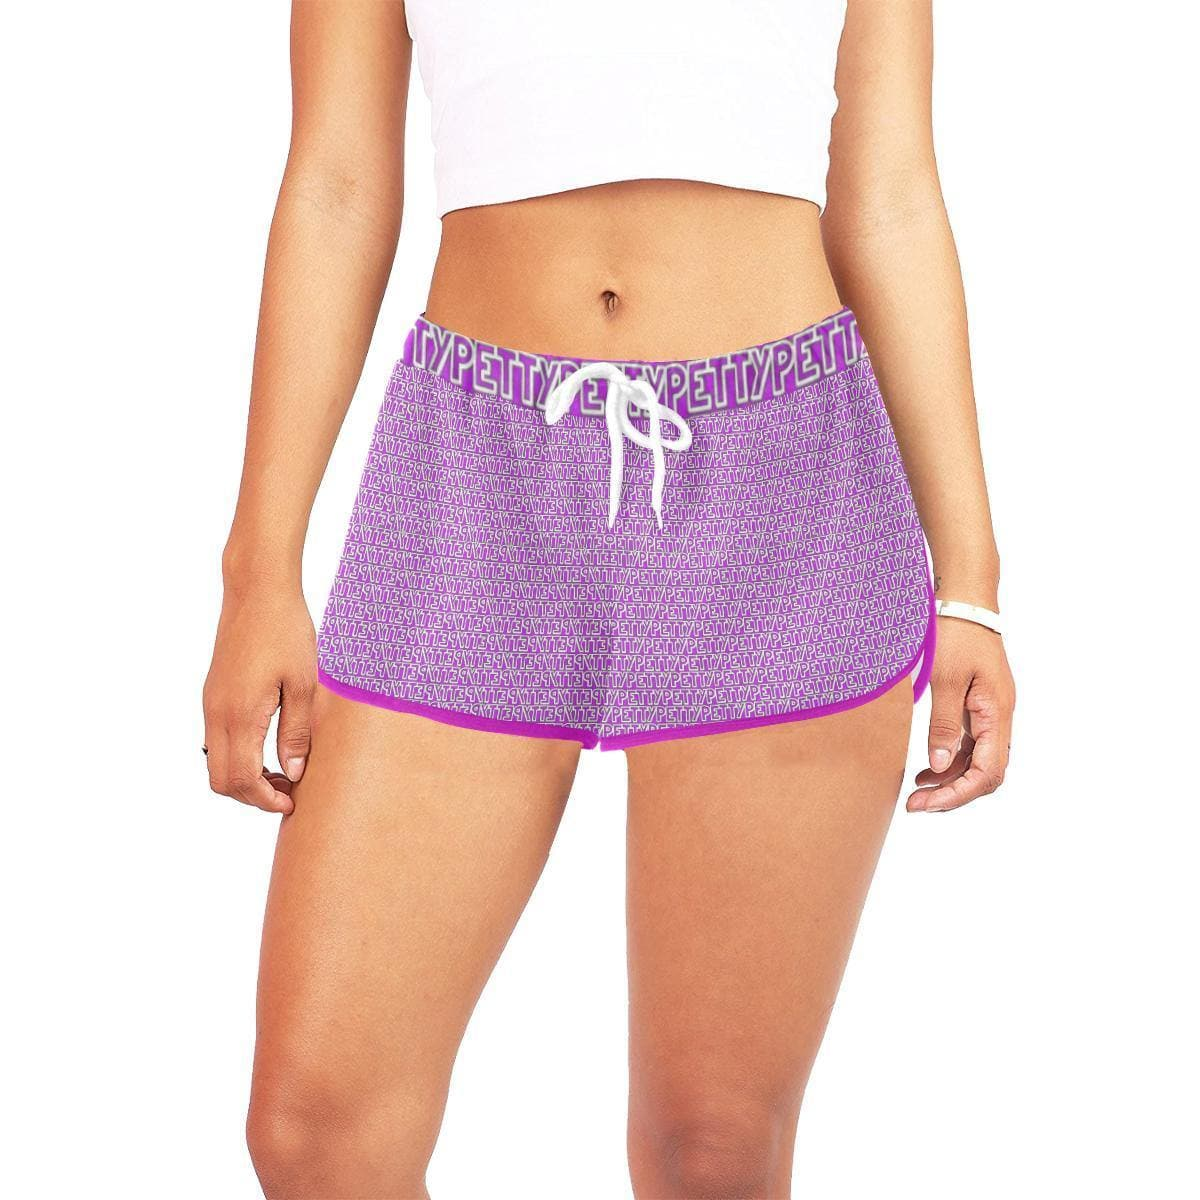 Petty Repeat Tease Shorts - TFC&H Co.